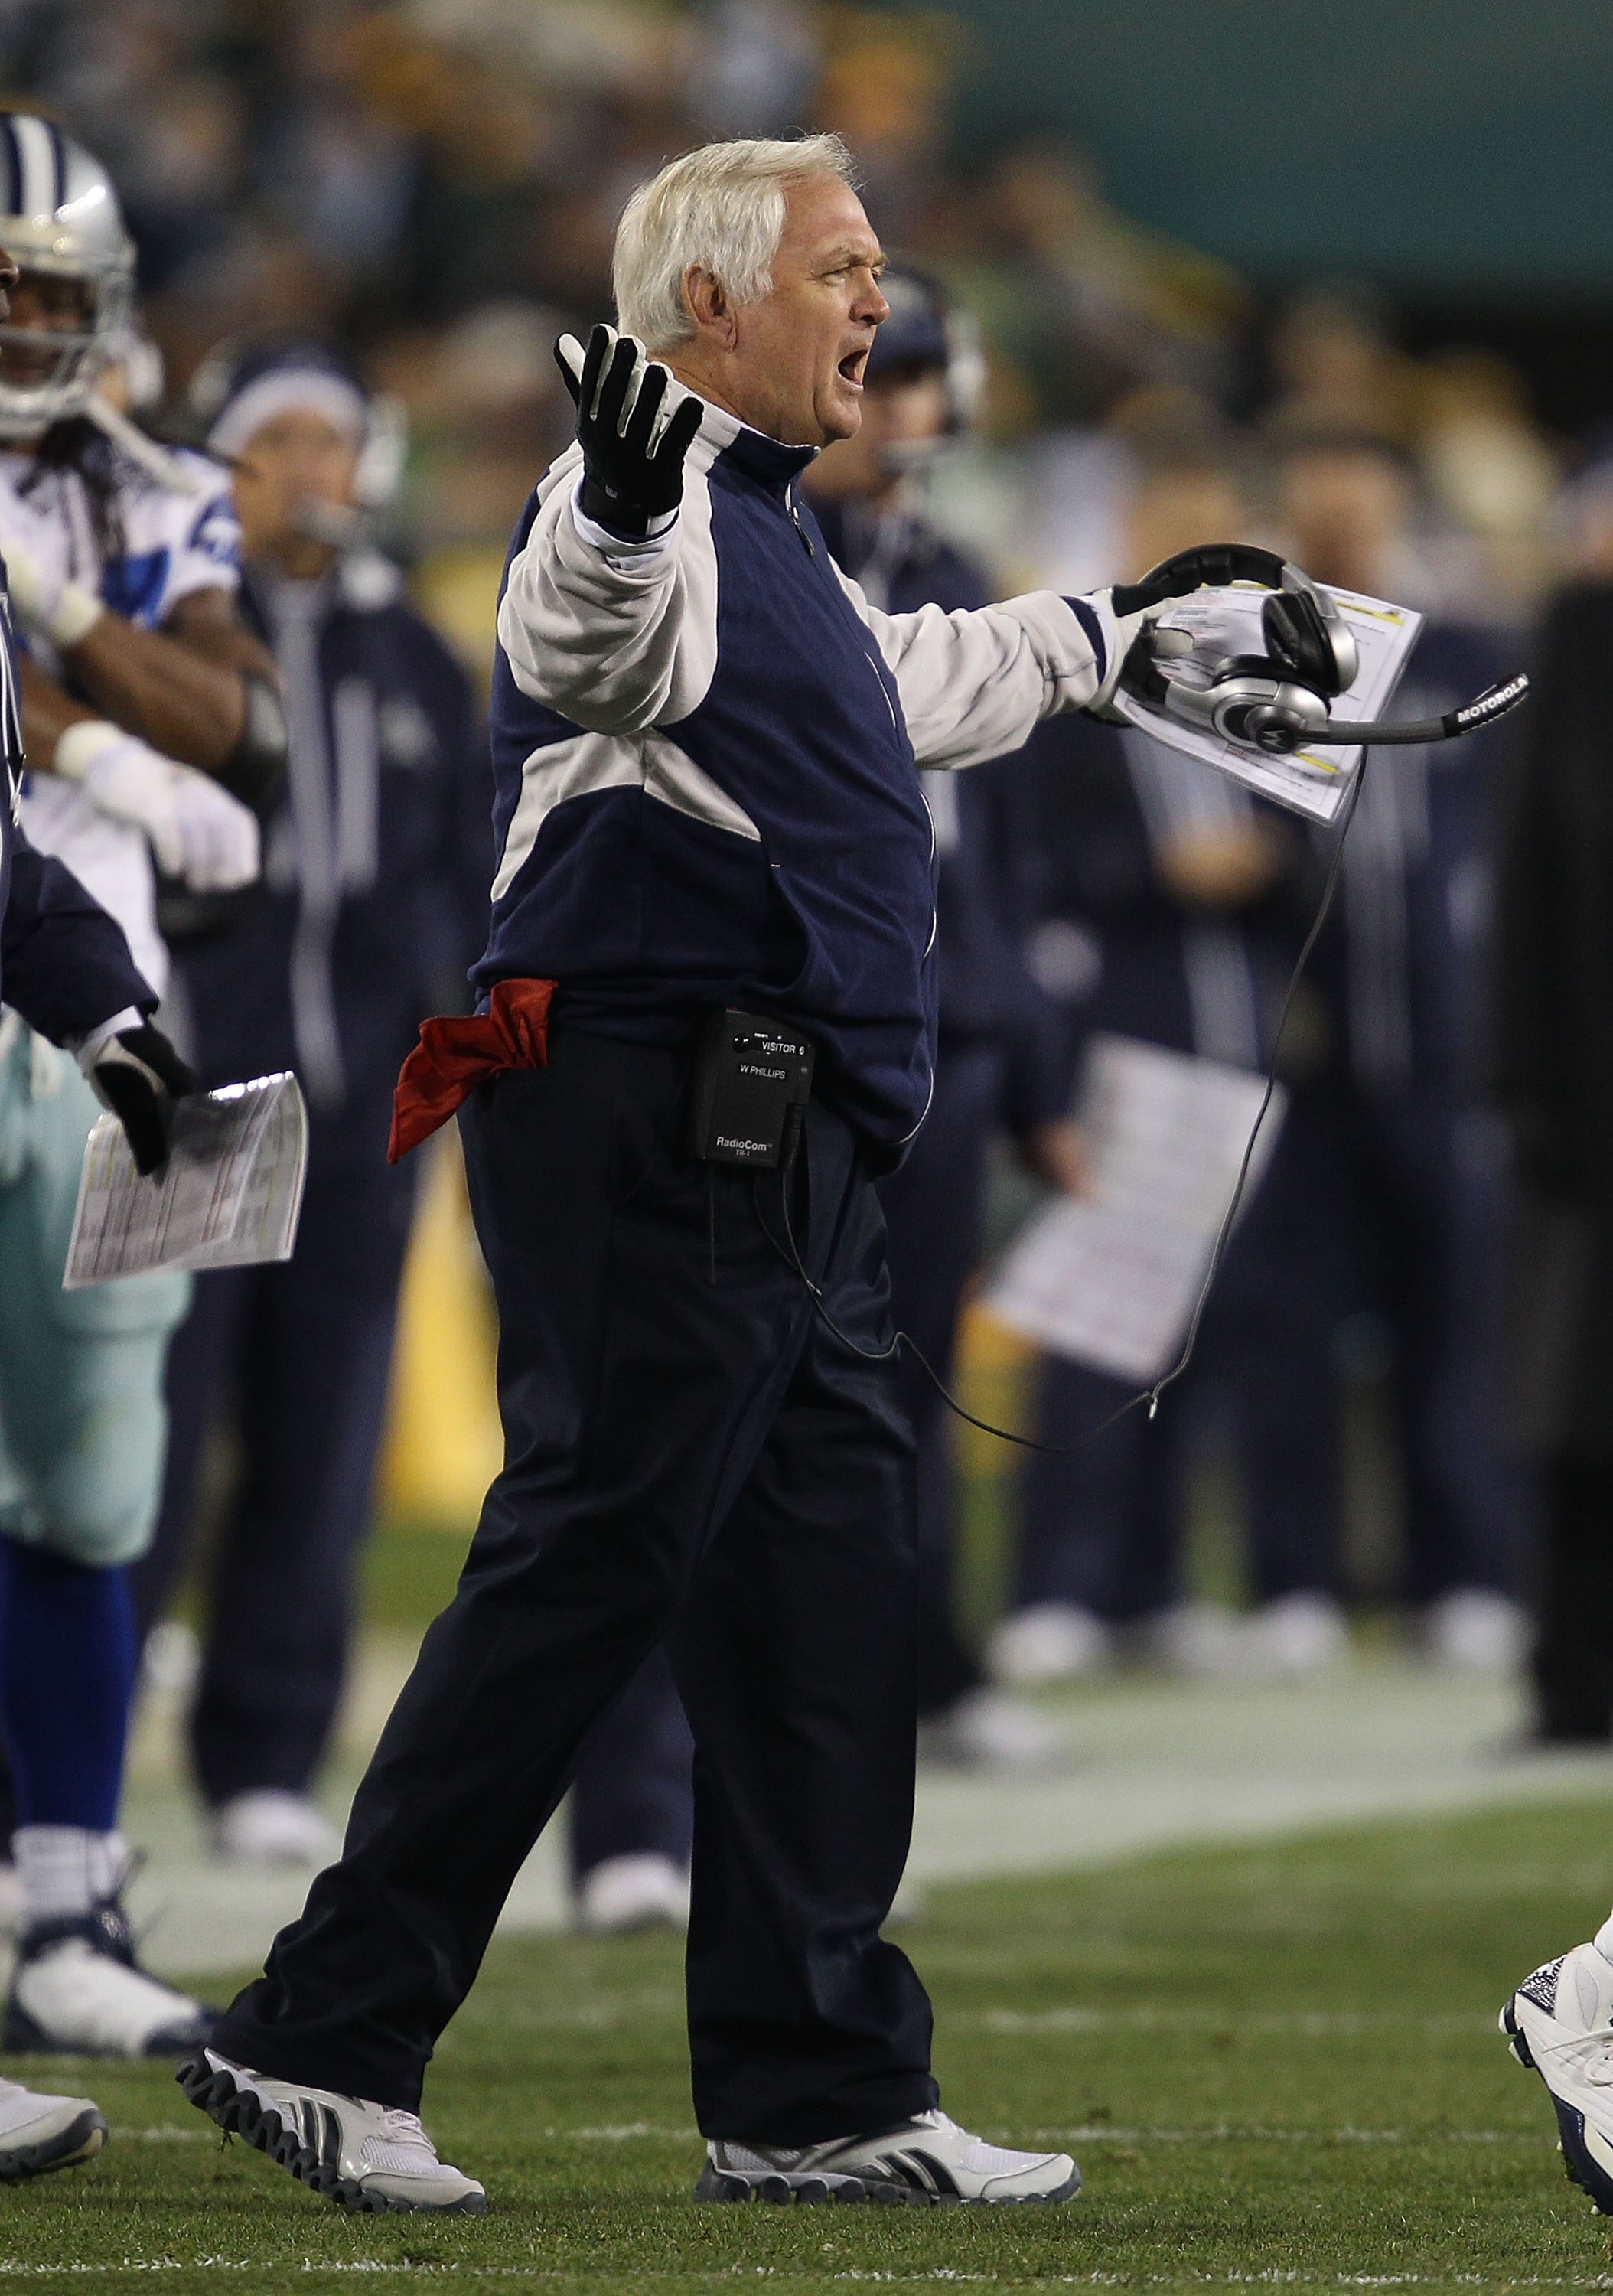 GREEN BAY, WI - NOVEMBER 07: Head coach Wade Phillips of the Dallas Cowboys complains to a referee during a game against the Green Bay Packers at Lambeau Field on November 7, 2010 in Green Bay, Wisconsin. (Photo by Jonathan Daniel/Getty Images)